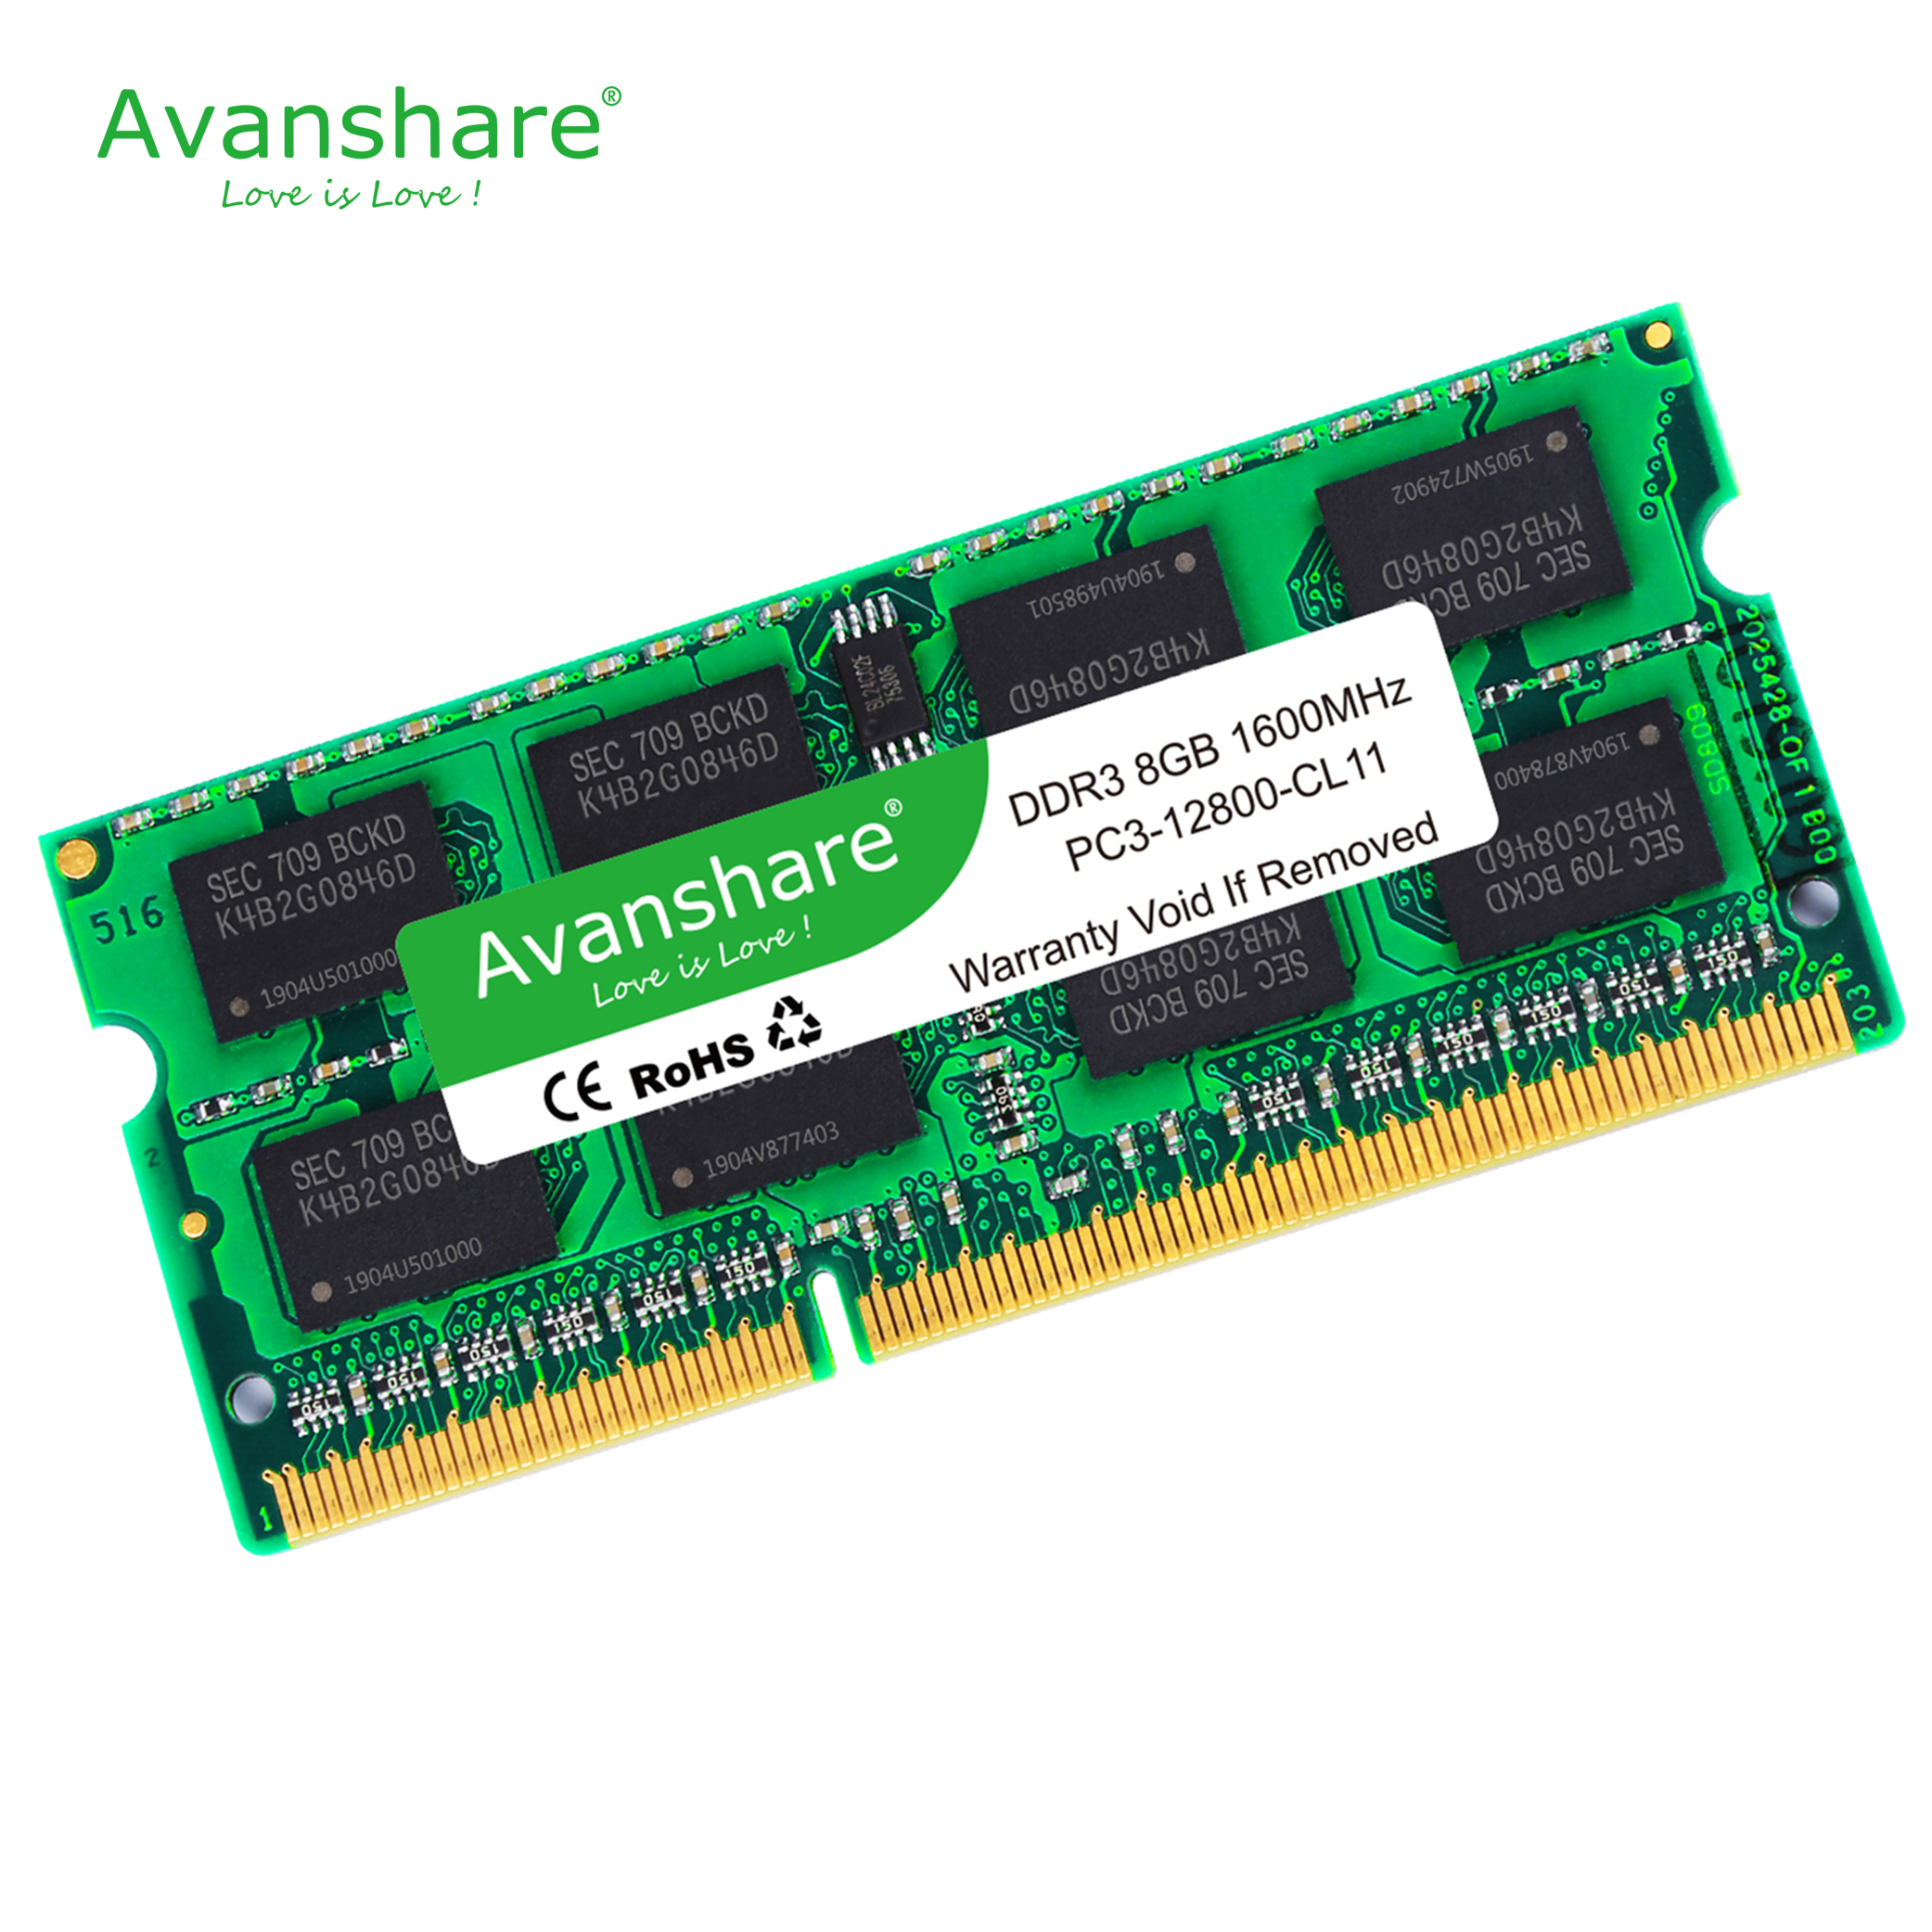 Avanshare memory ddr3 8gb for laptop 1600MHz sodimm macbook ram <font><b>ddr3l</b></font> <font><b>1600</b></font> compatible ddr3 laptop <font><b>4gb</b></font> 1333MHz sdram 1066 mhz image